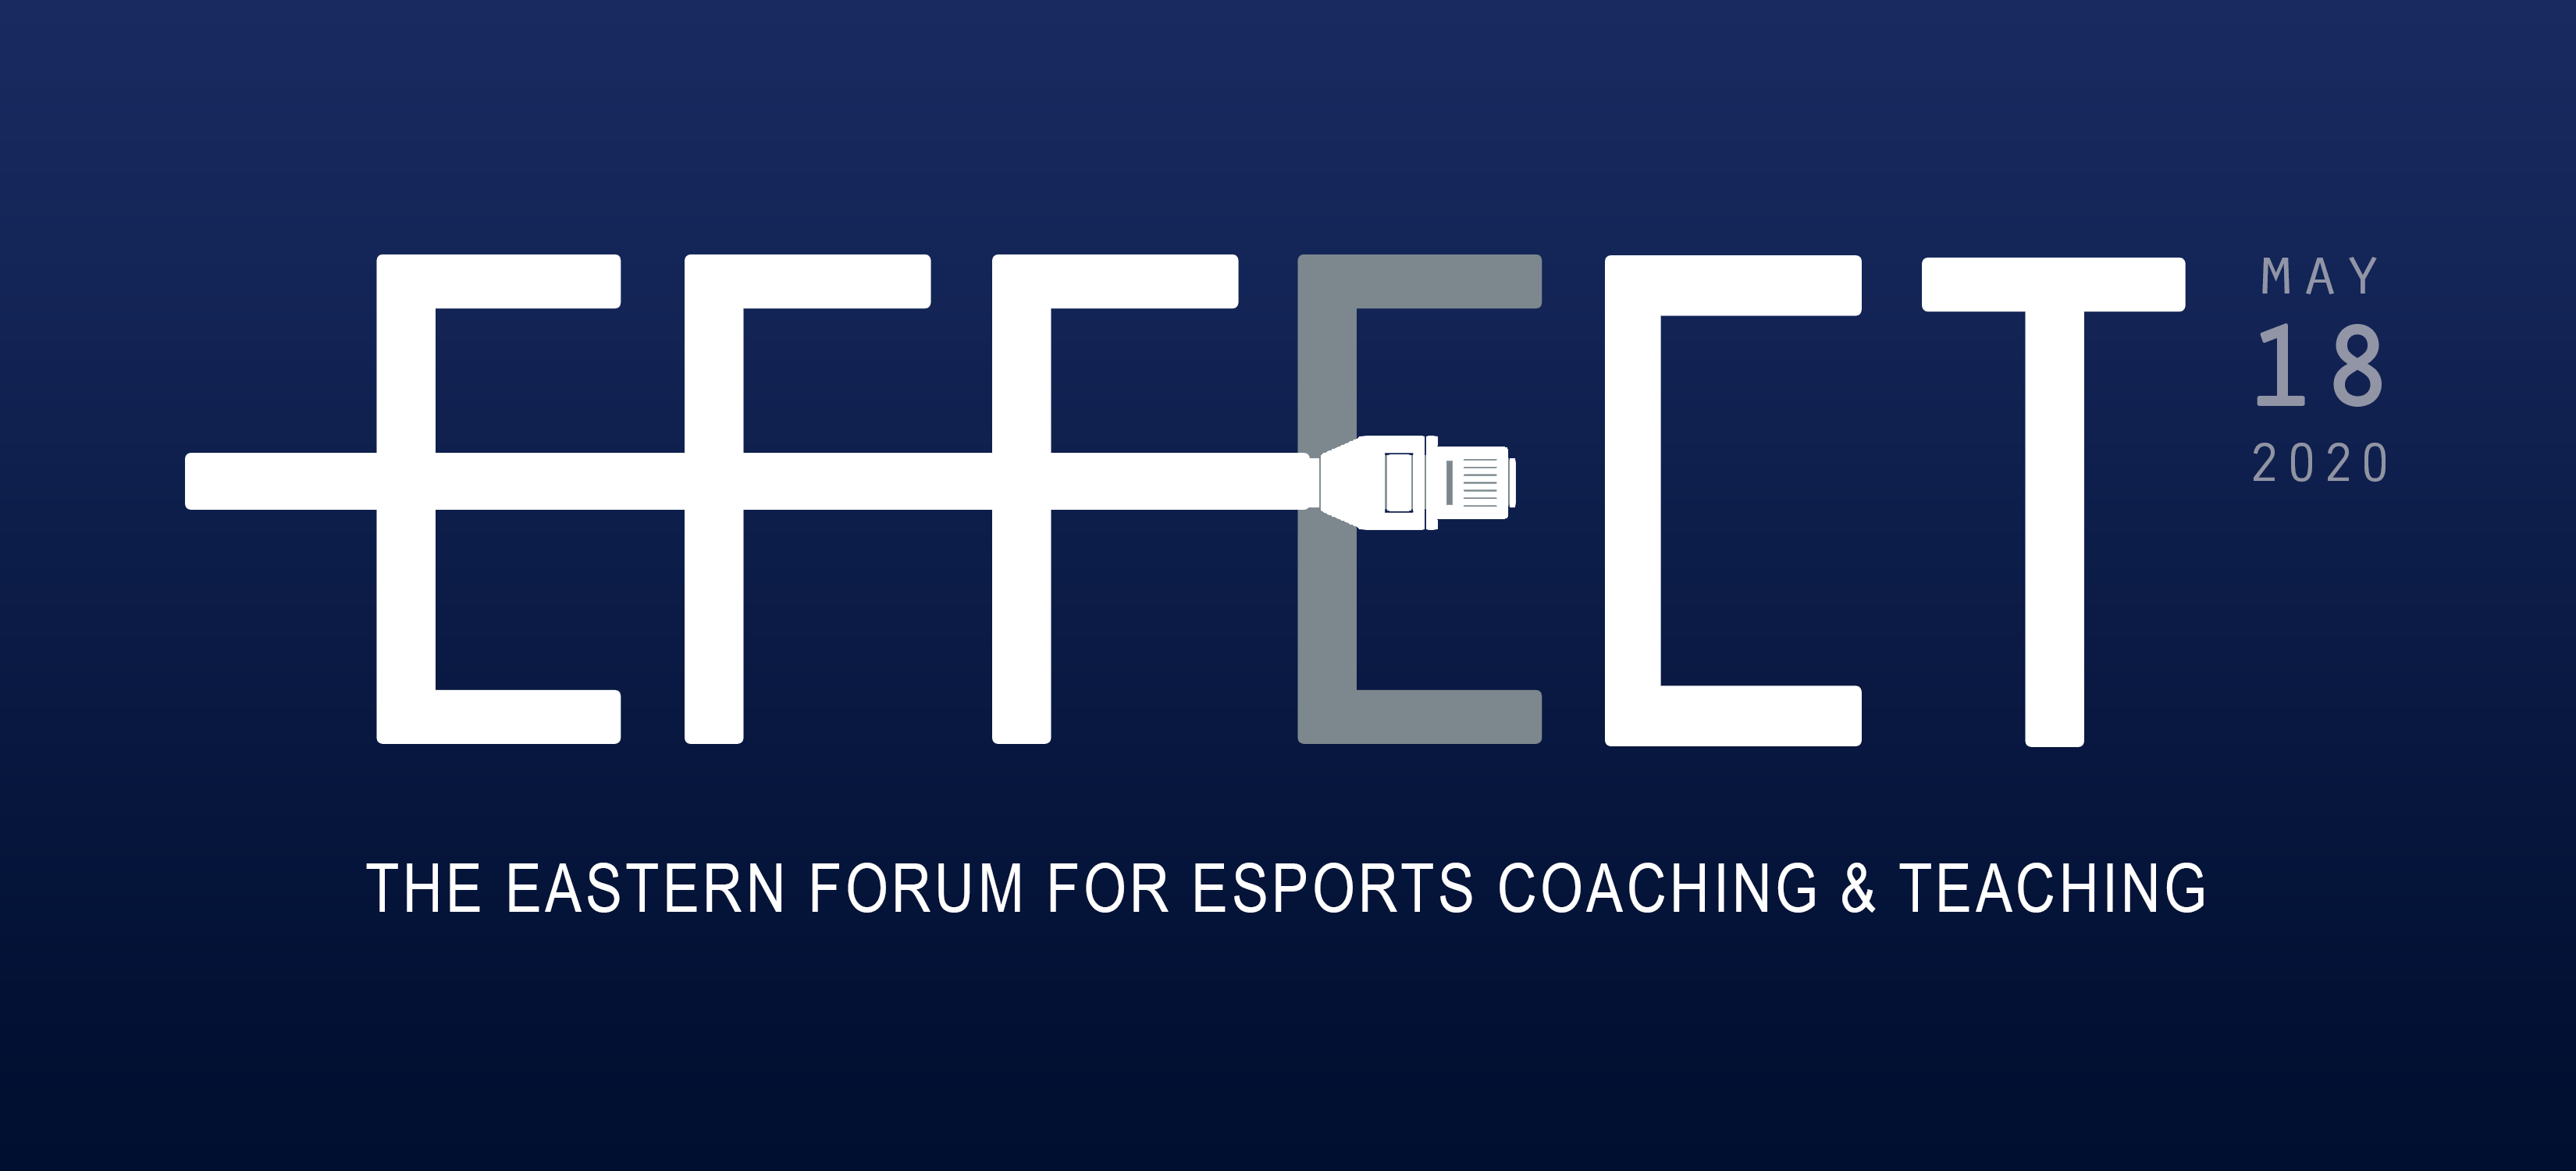 EFFECT Conference Logo (18 May 2020)